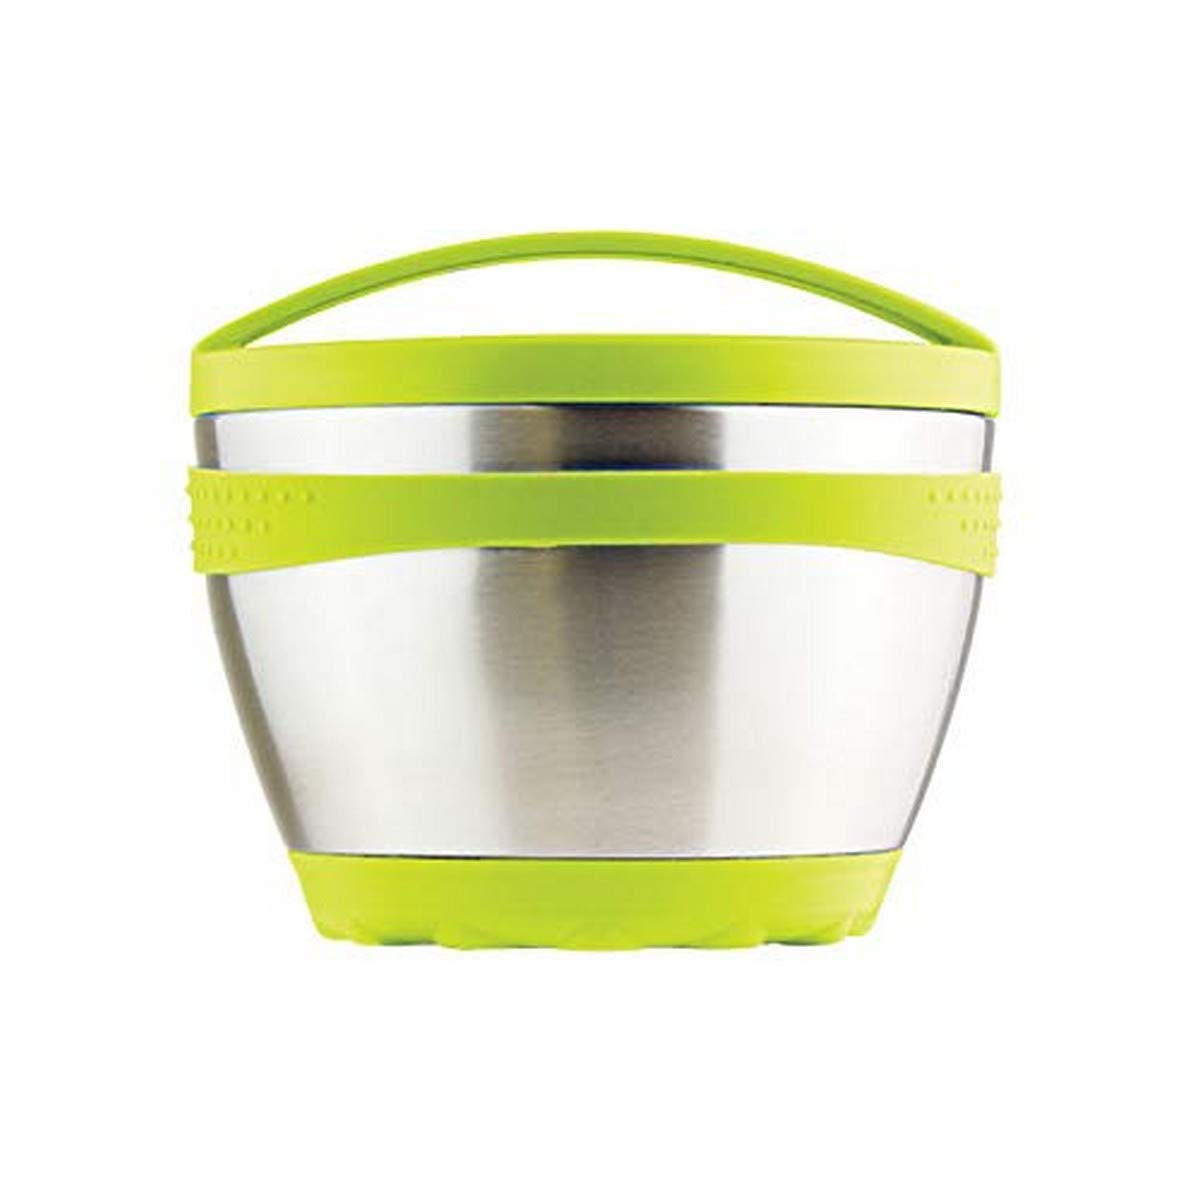 Kid Basix Safe Bowl, Reusable Stainless Steel, Lunch Container for Adults, Thermos for Hot & Cold Food Storage, Dishwasher Safe, 16oz, Lime